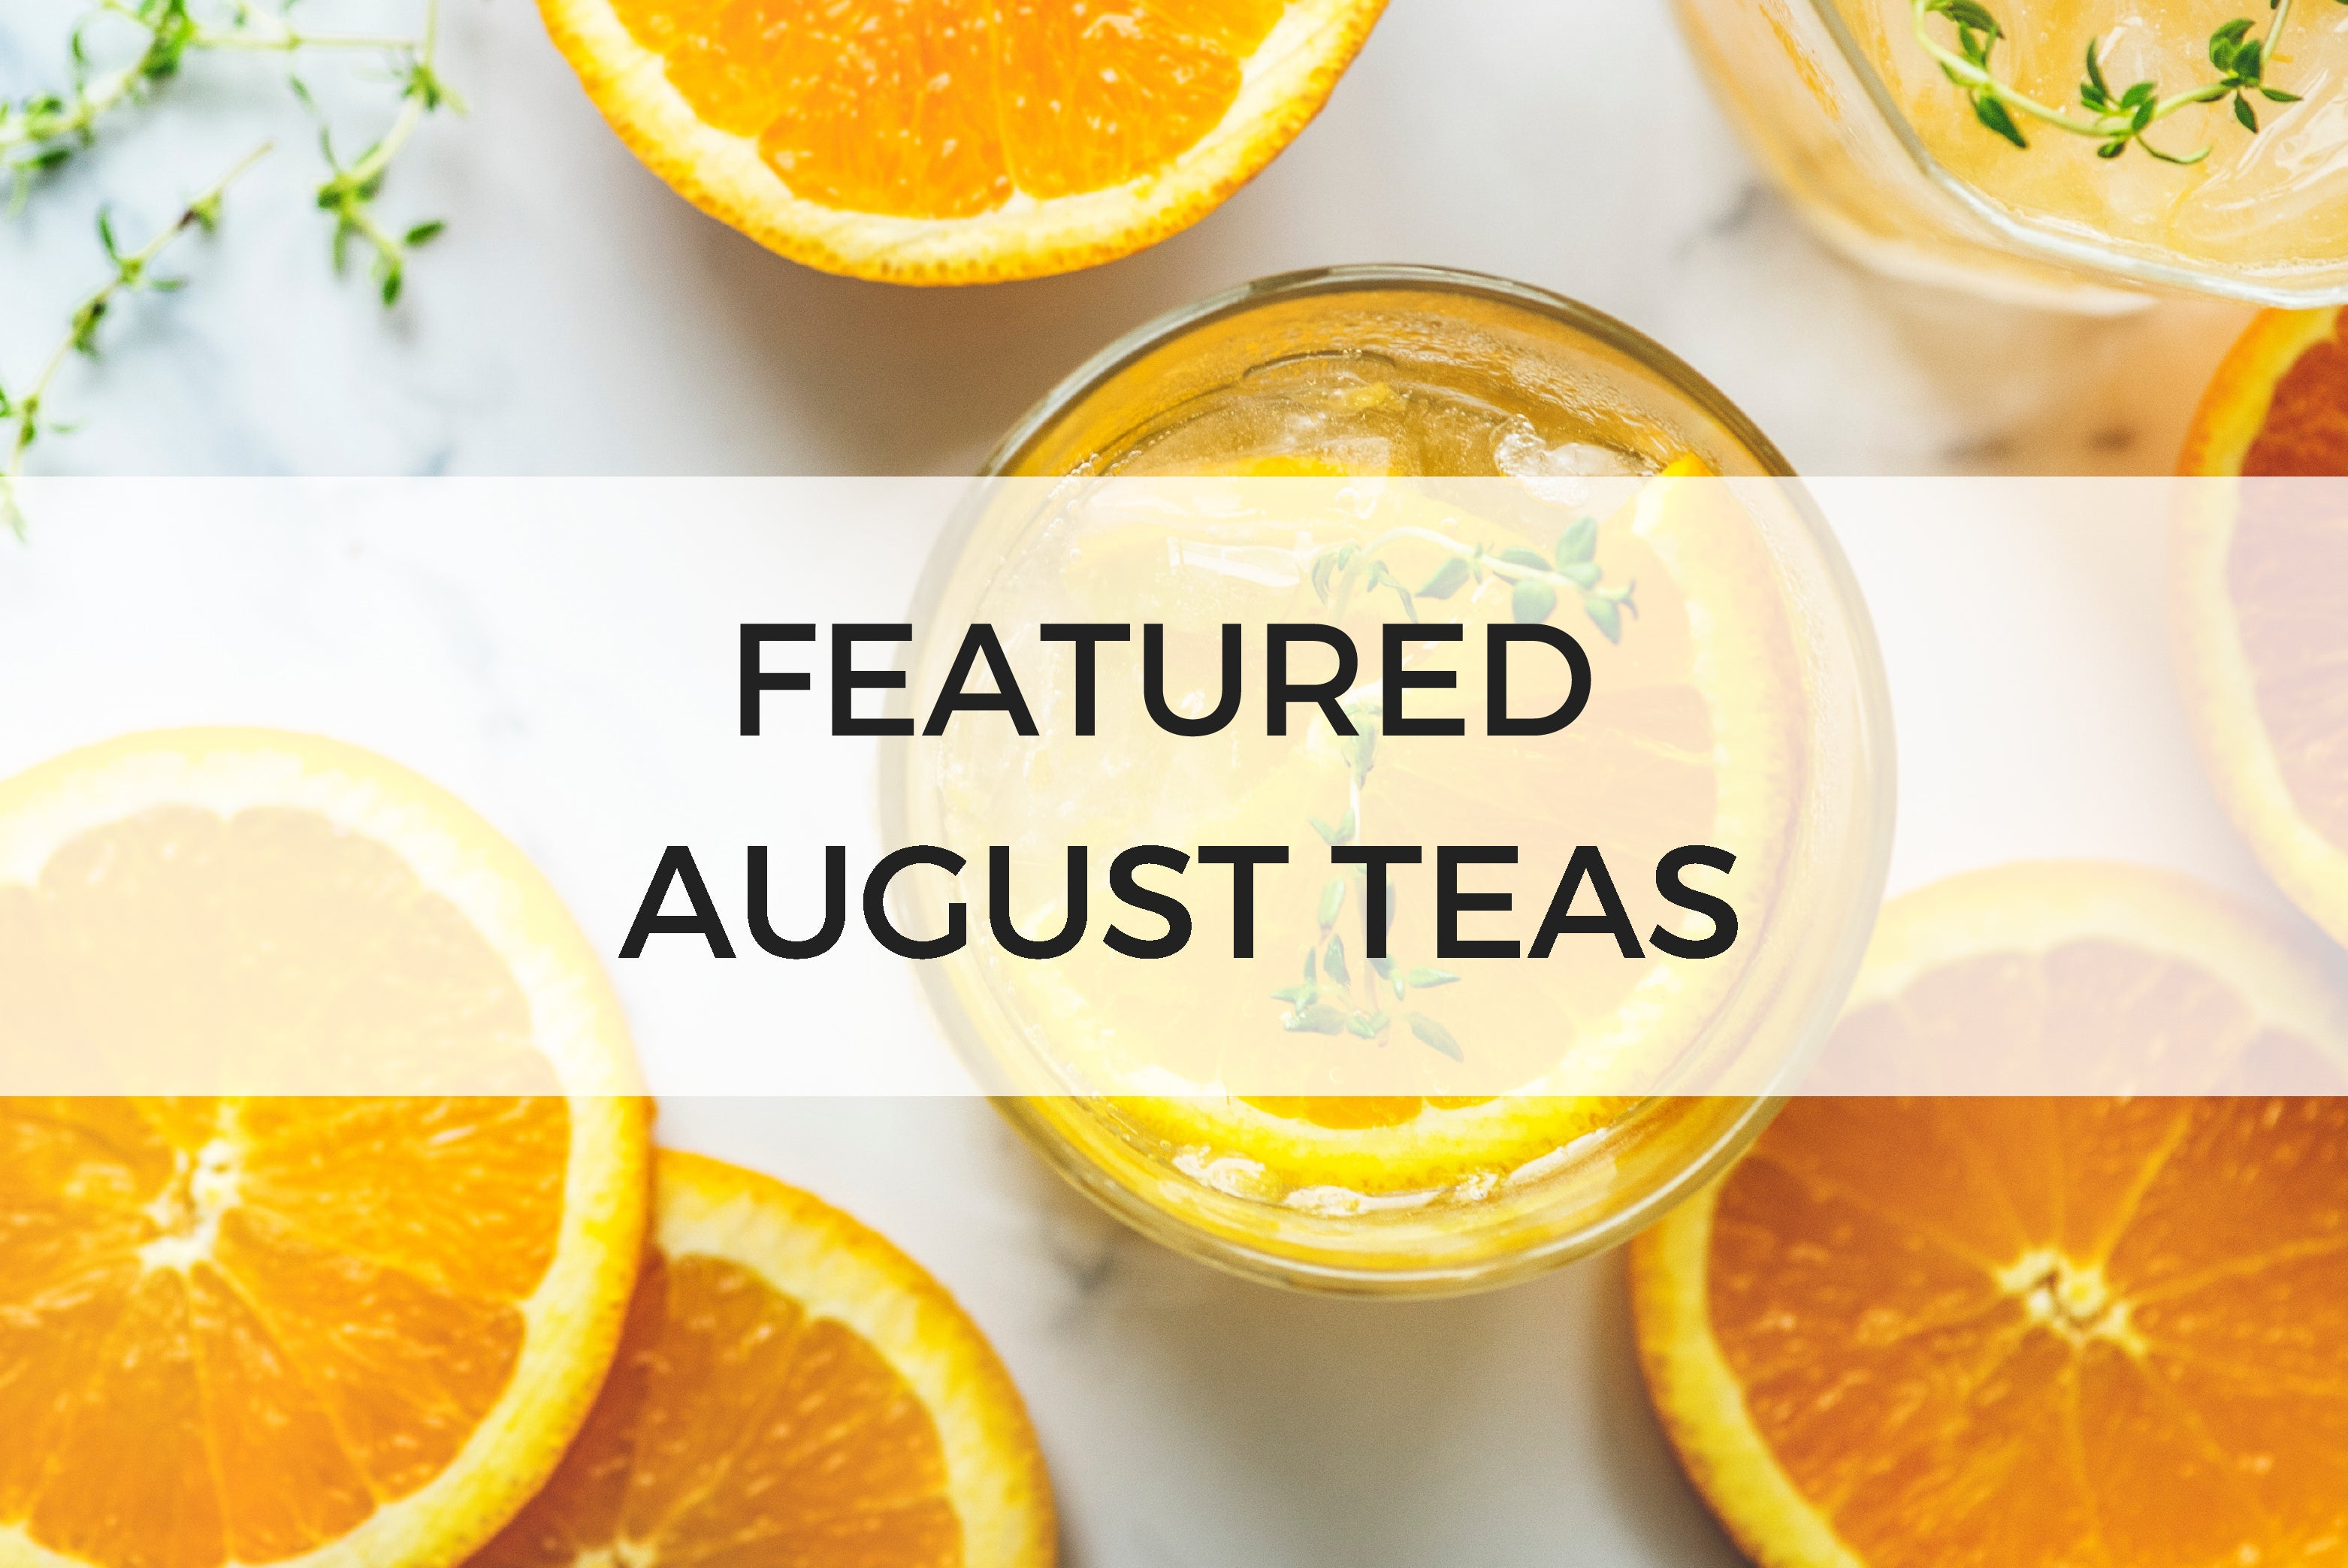 FEATURED AUGUST TEAS